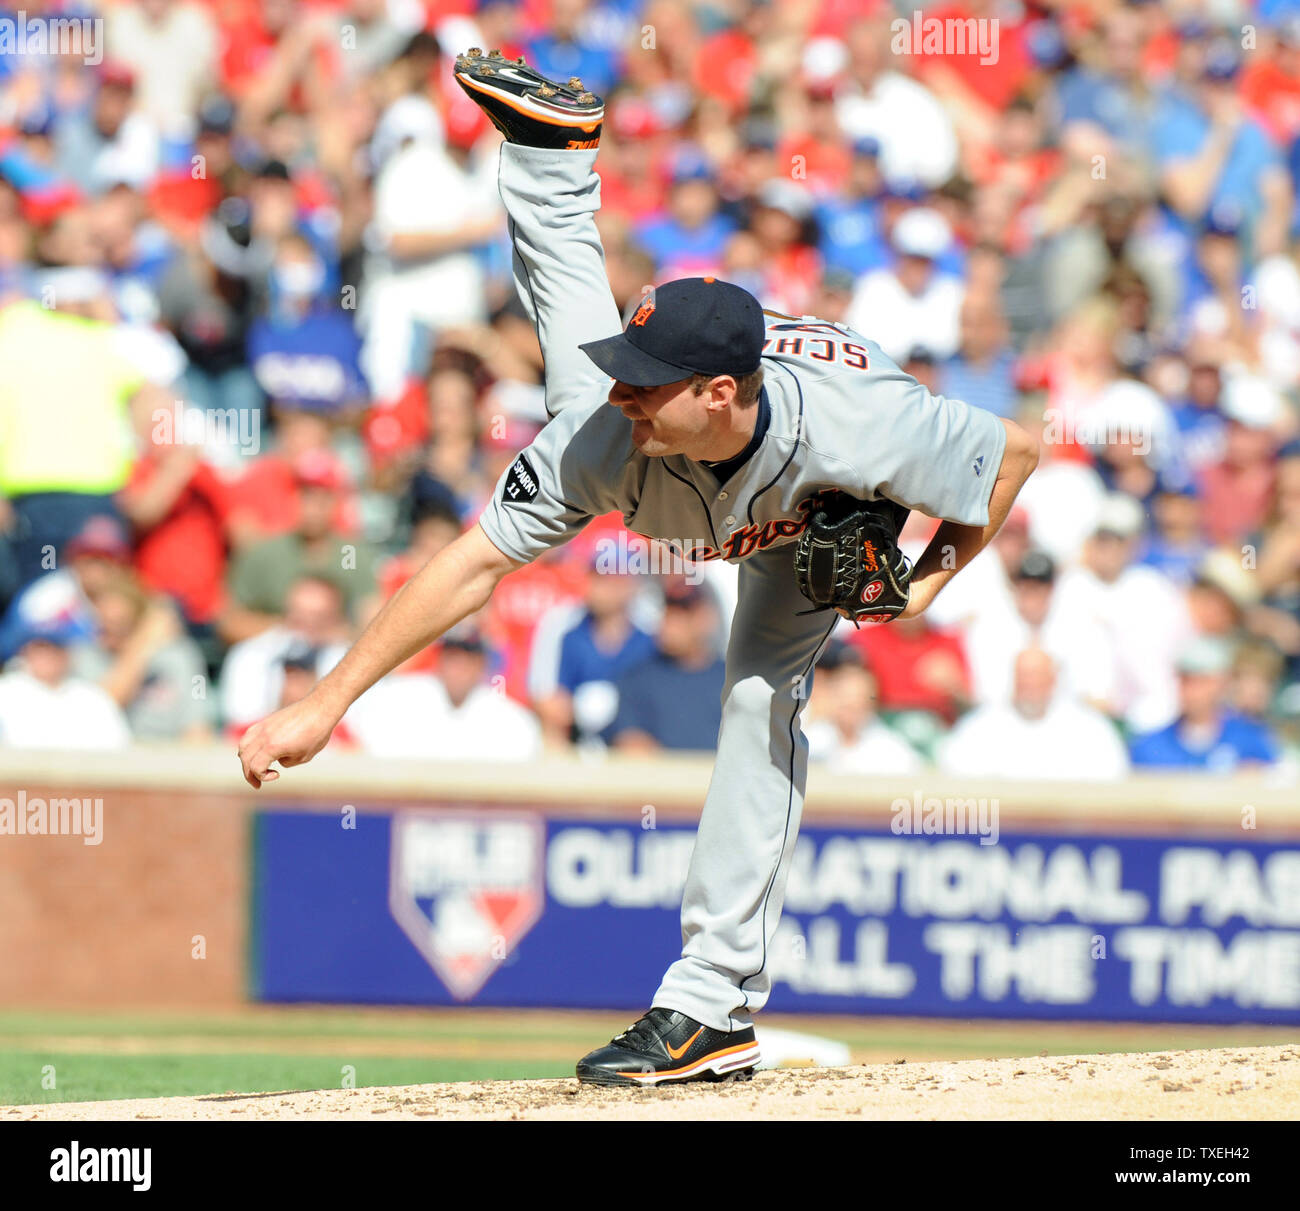 Detroit Tigers starting pitcher Max Scherzer throws against the Texas Rangers in game two of the ALCS at Rangers Ballpark in Arlington on October 10, 2011 in Arlington, Texas.   The Rangers lead the best of seven series 1-0.   UPI/Ian Halperin Stock Photo